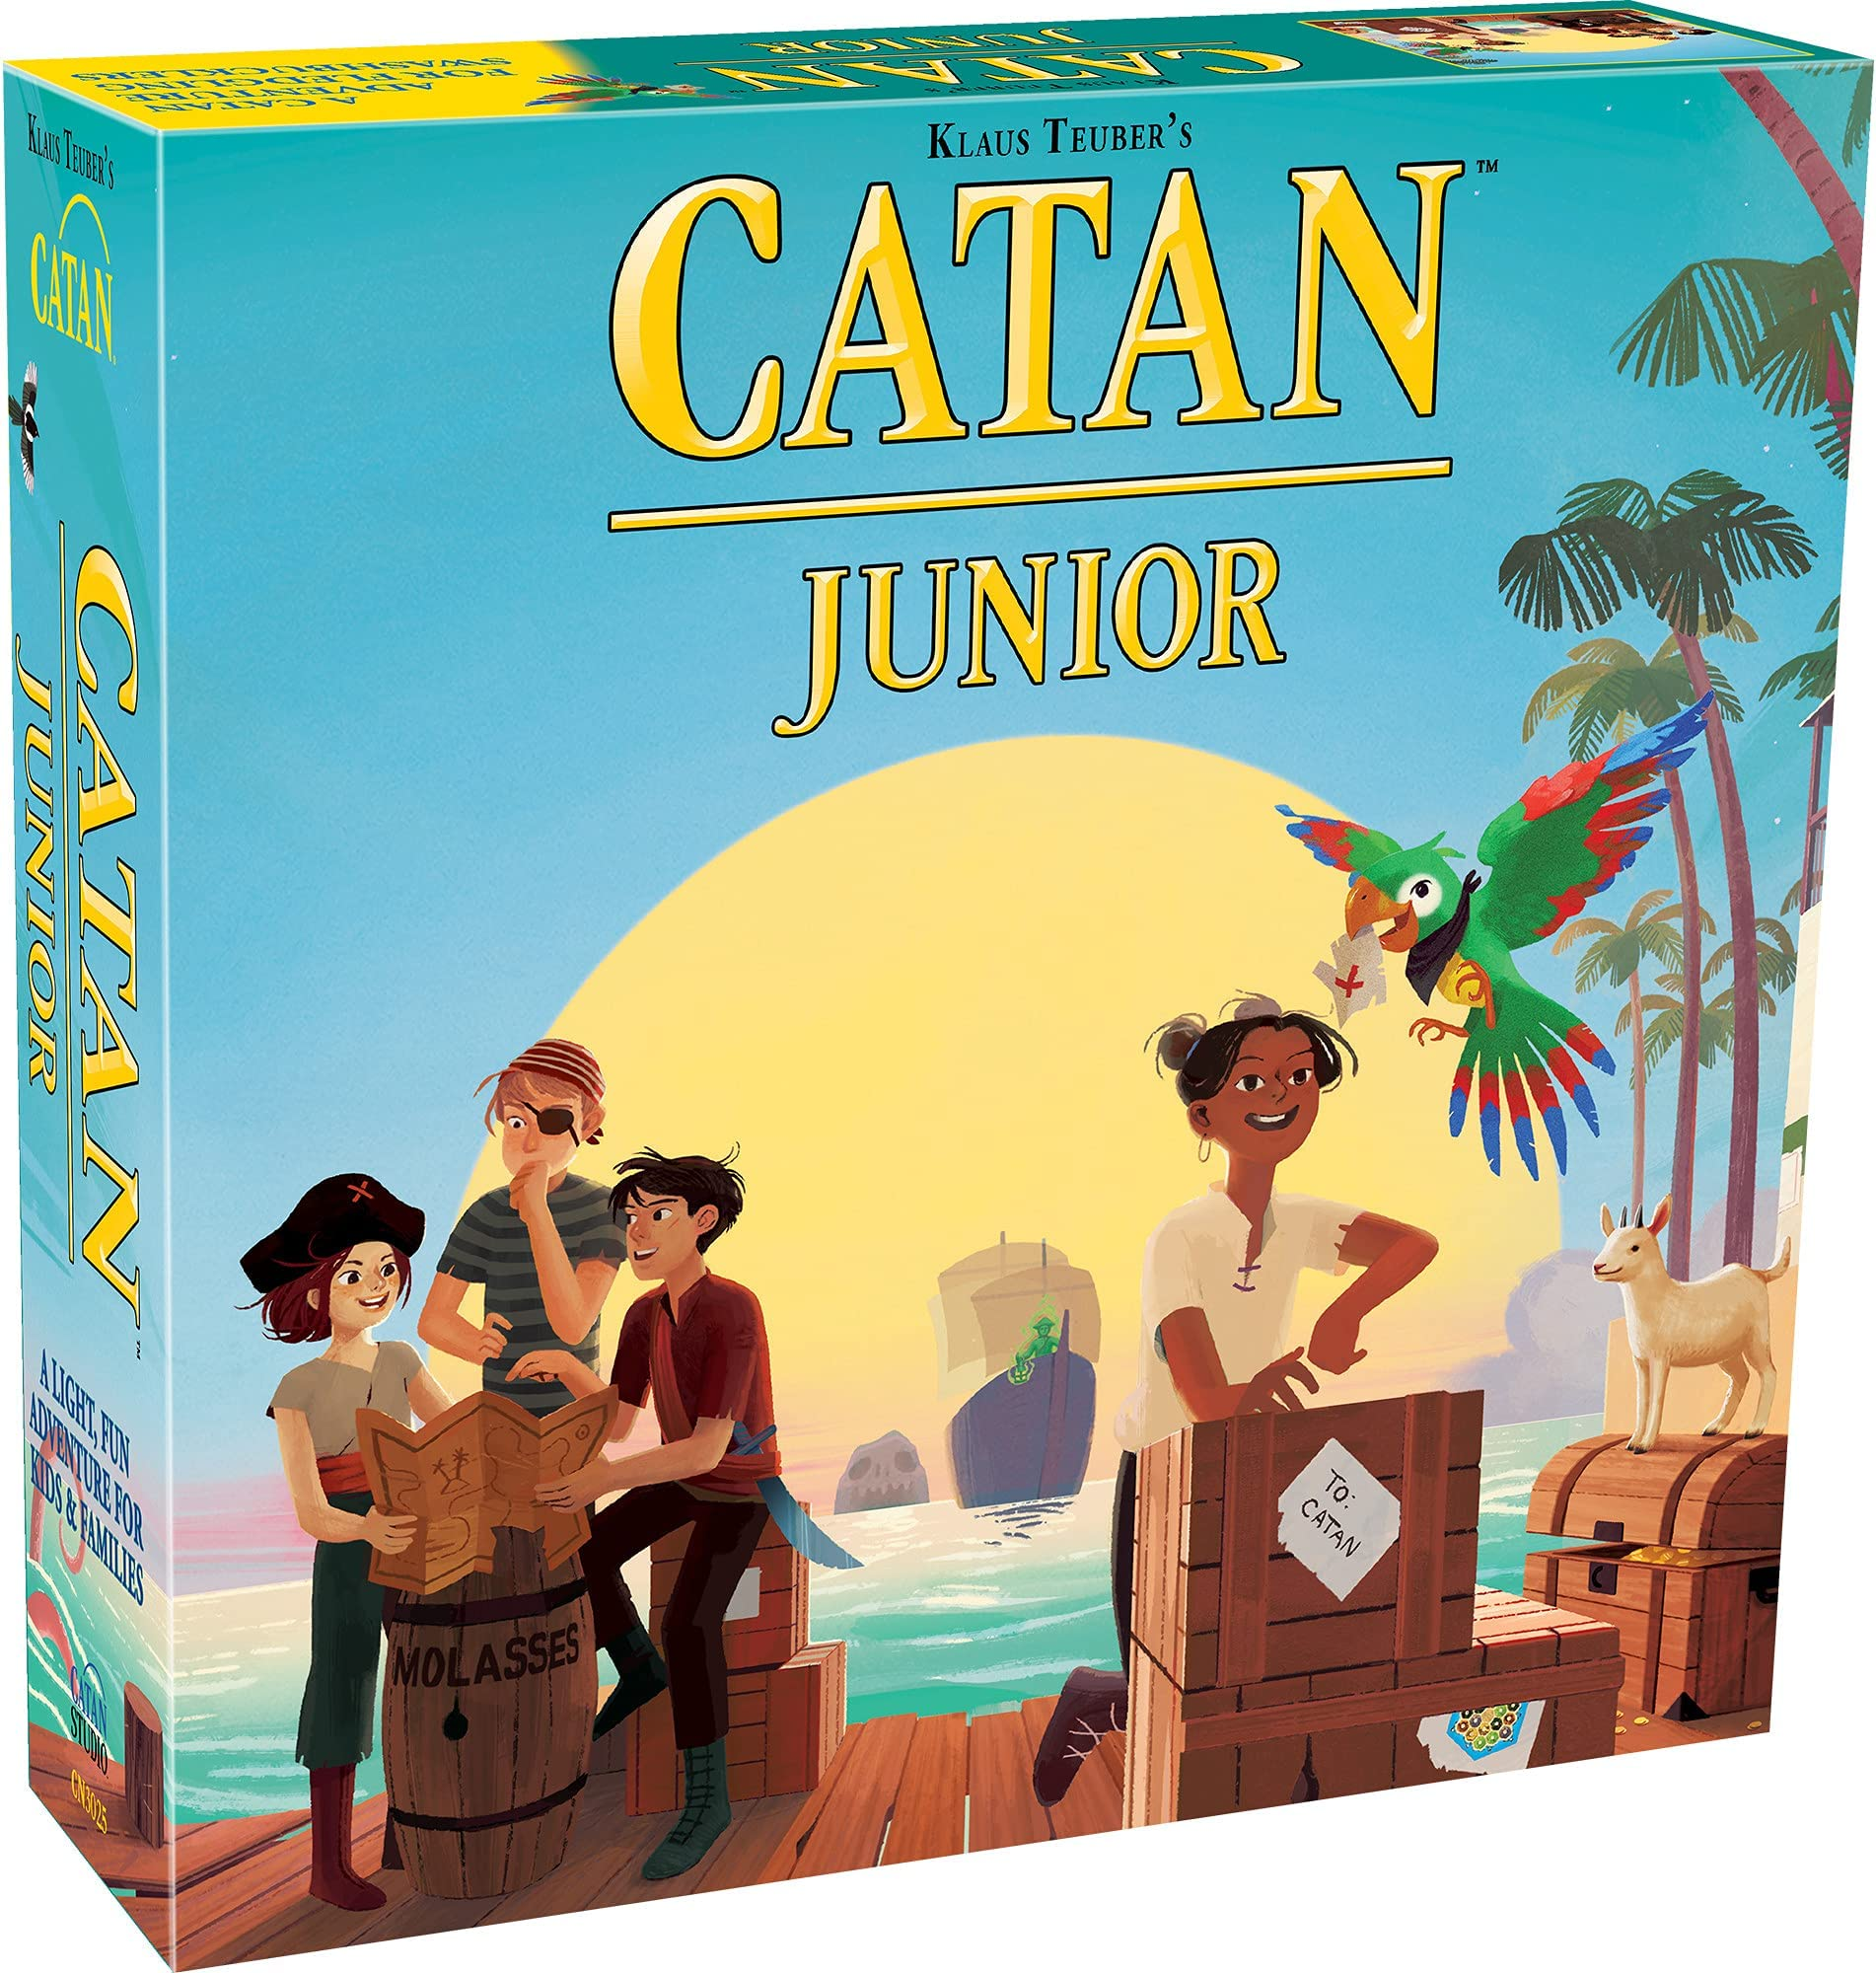 CATAN Junior Board Game | Board Game for Kids | Strategy Game for Kids | Family Board Game | Adventure Game for Kids | Ages 6+ | For 2 to 4 players | Average Playtime 30 minutes | Made by Catan Studio